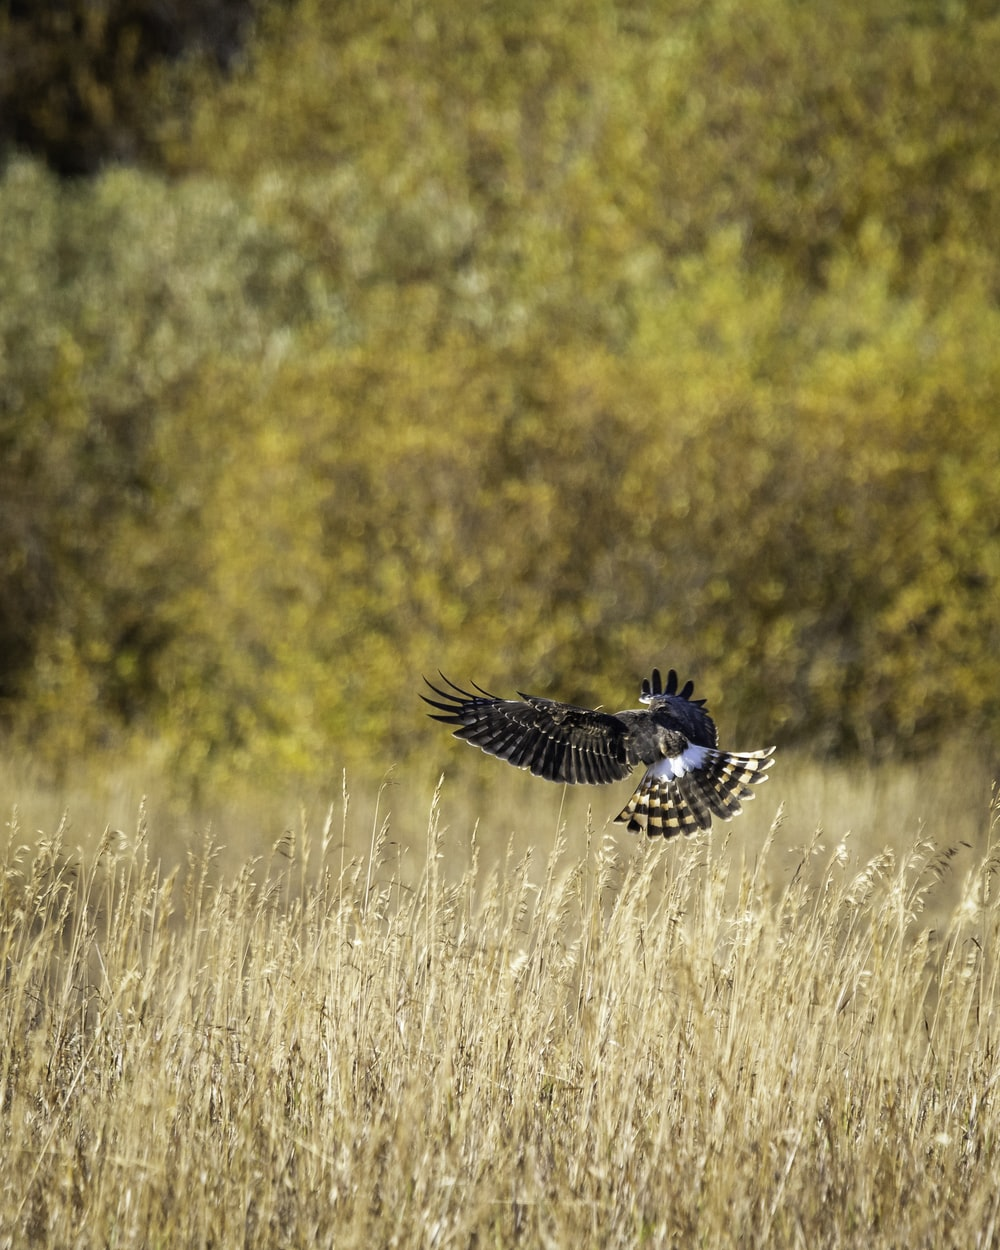 black and white bird flying over brown grass field during daytime